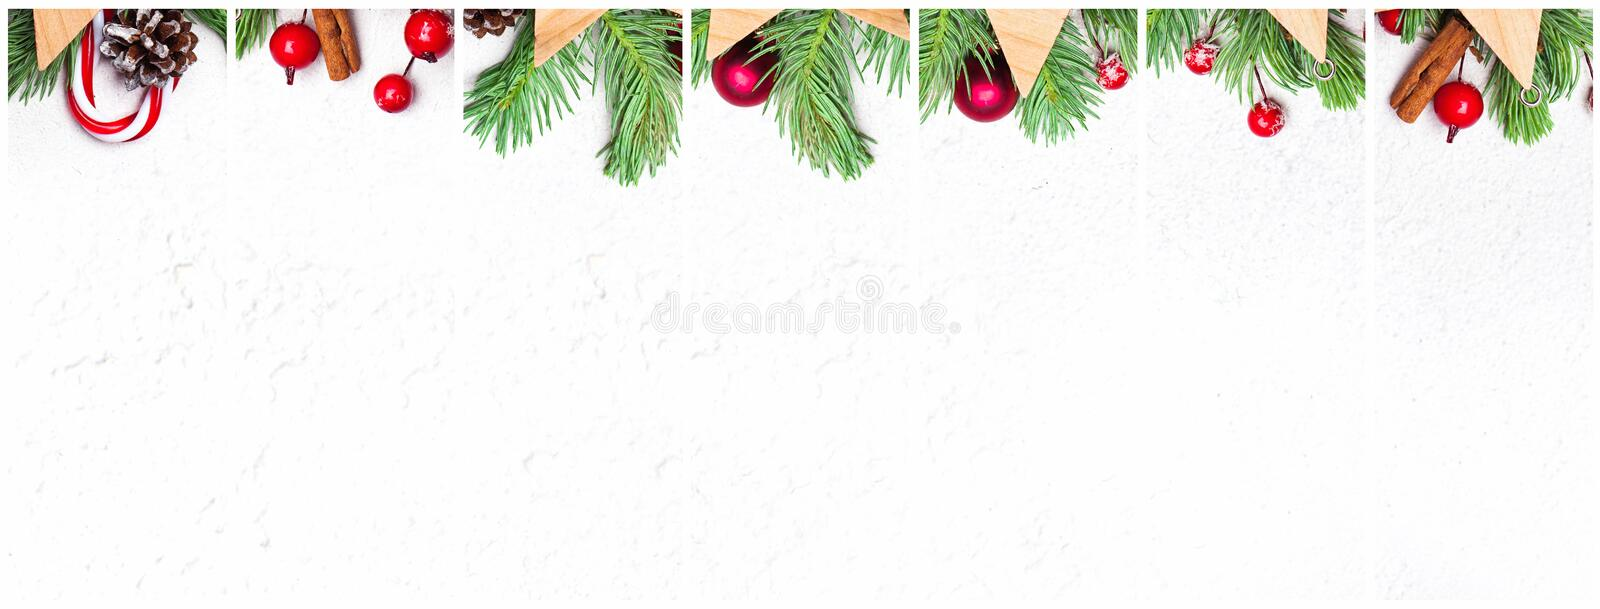 Collage of Christmas decoration. Composition set with green Xmas fir branch, red holly berries and baubles on white background royalty free stock photography